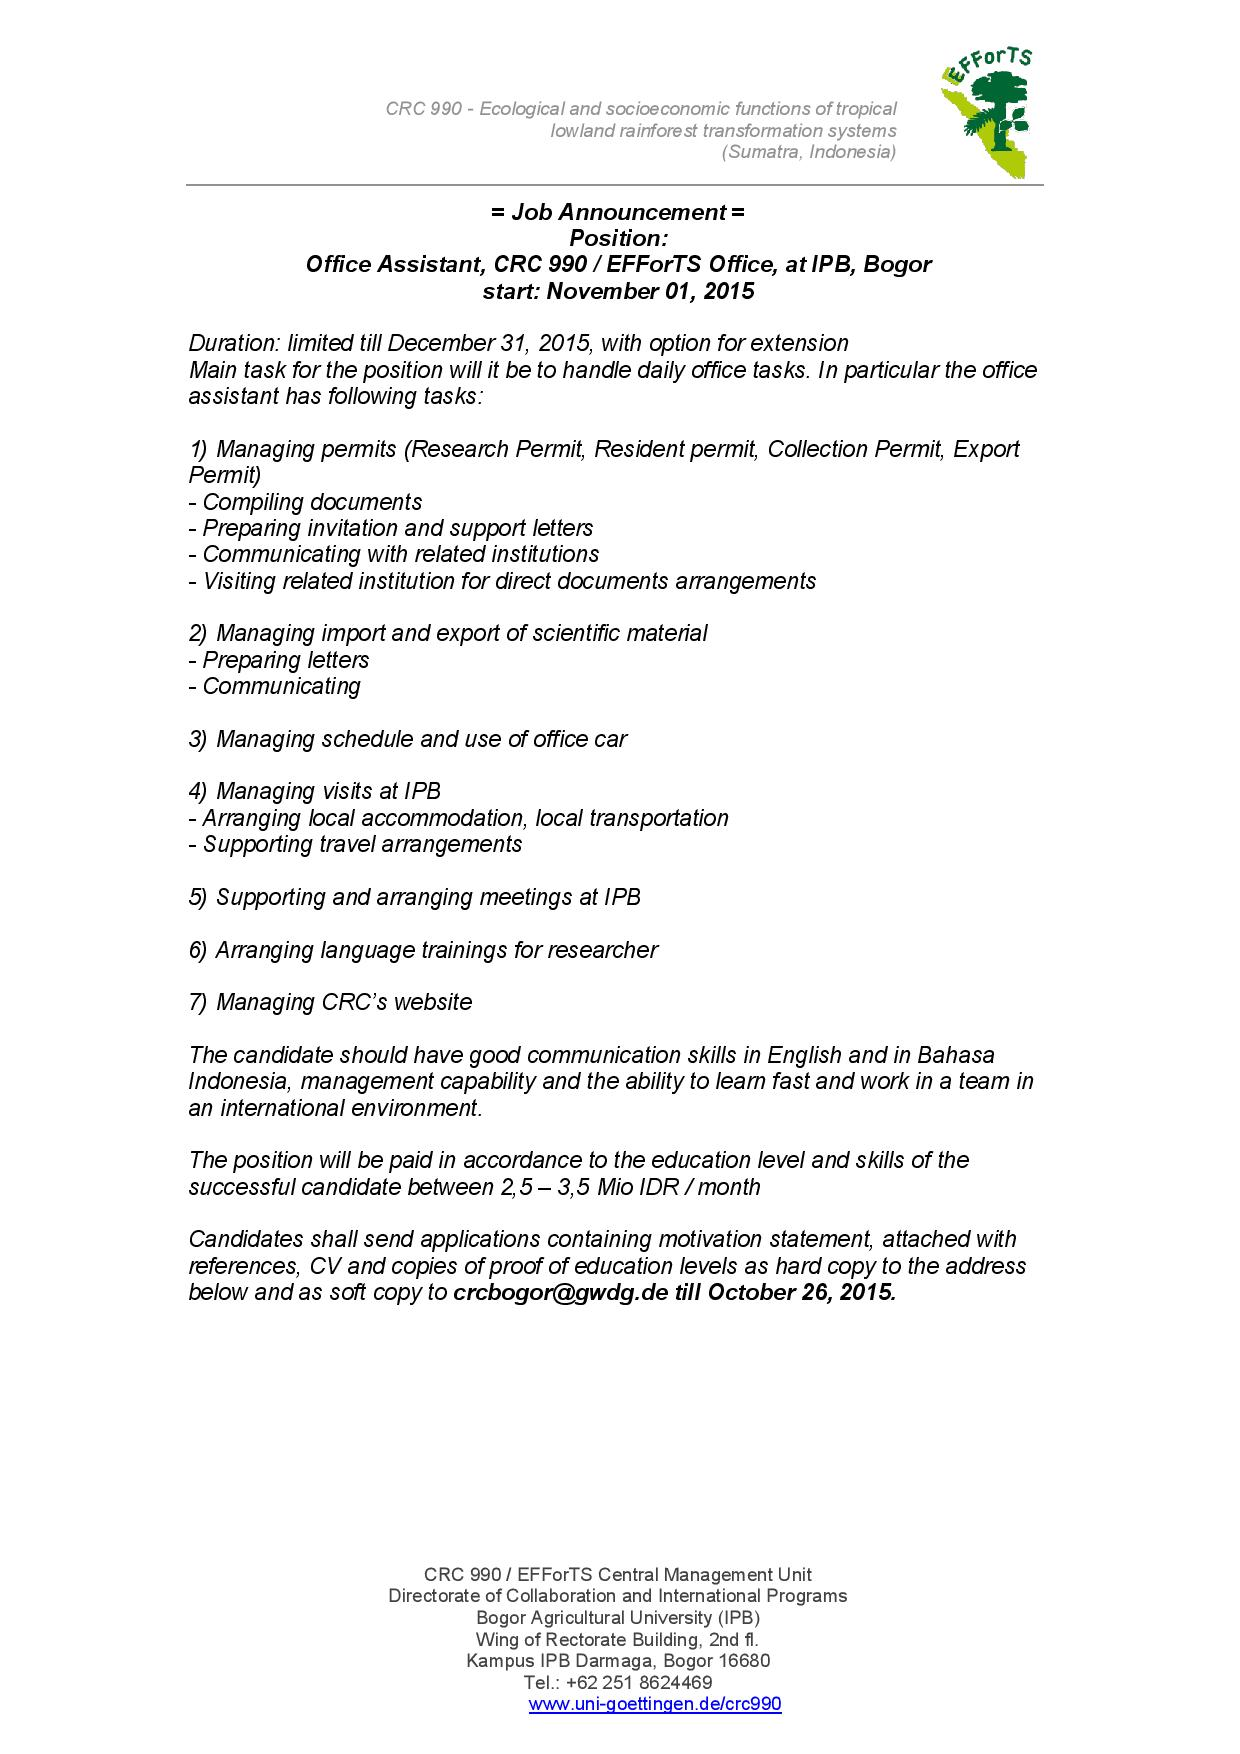 Job announcement, office assistant, IPB office New-page-001